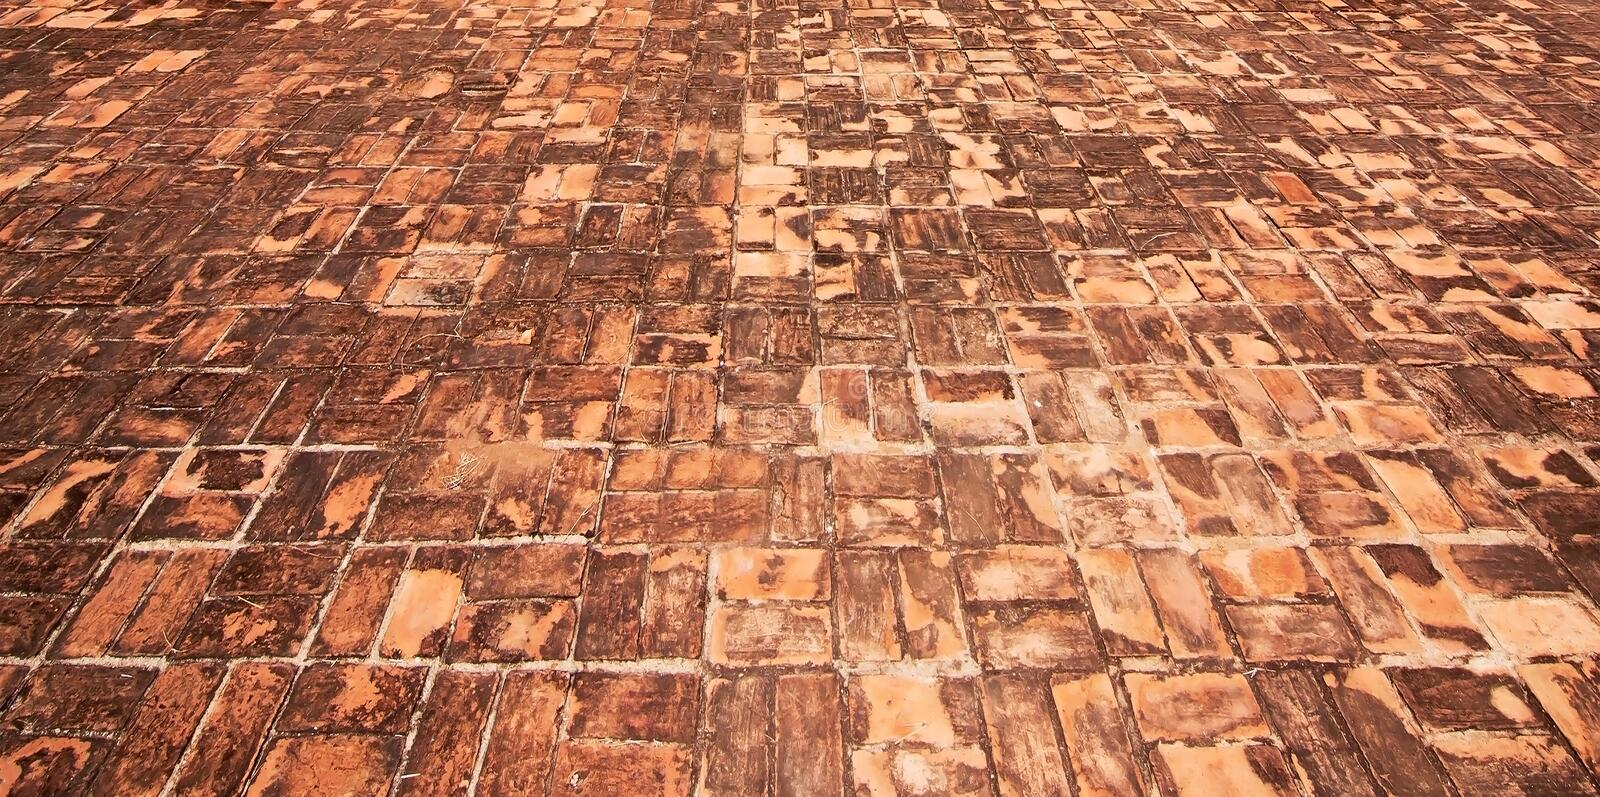 Stone floor pavement for background.  royalty free stock photos